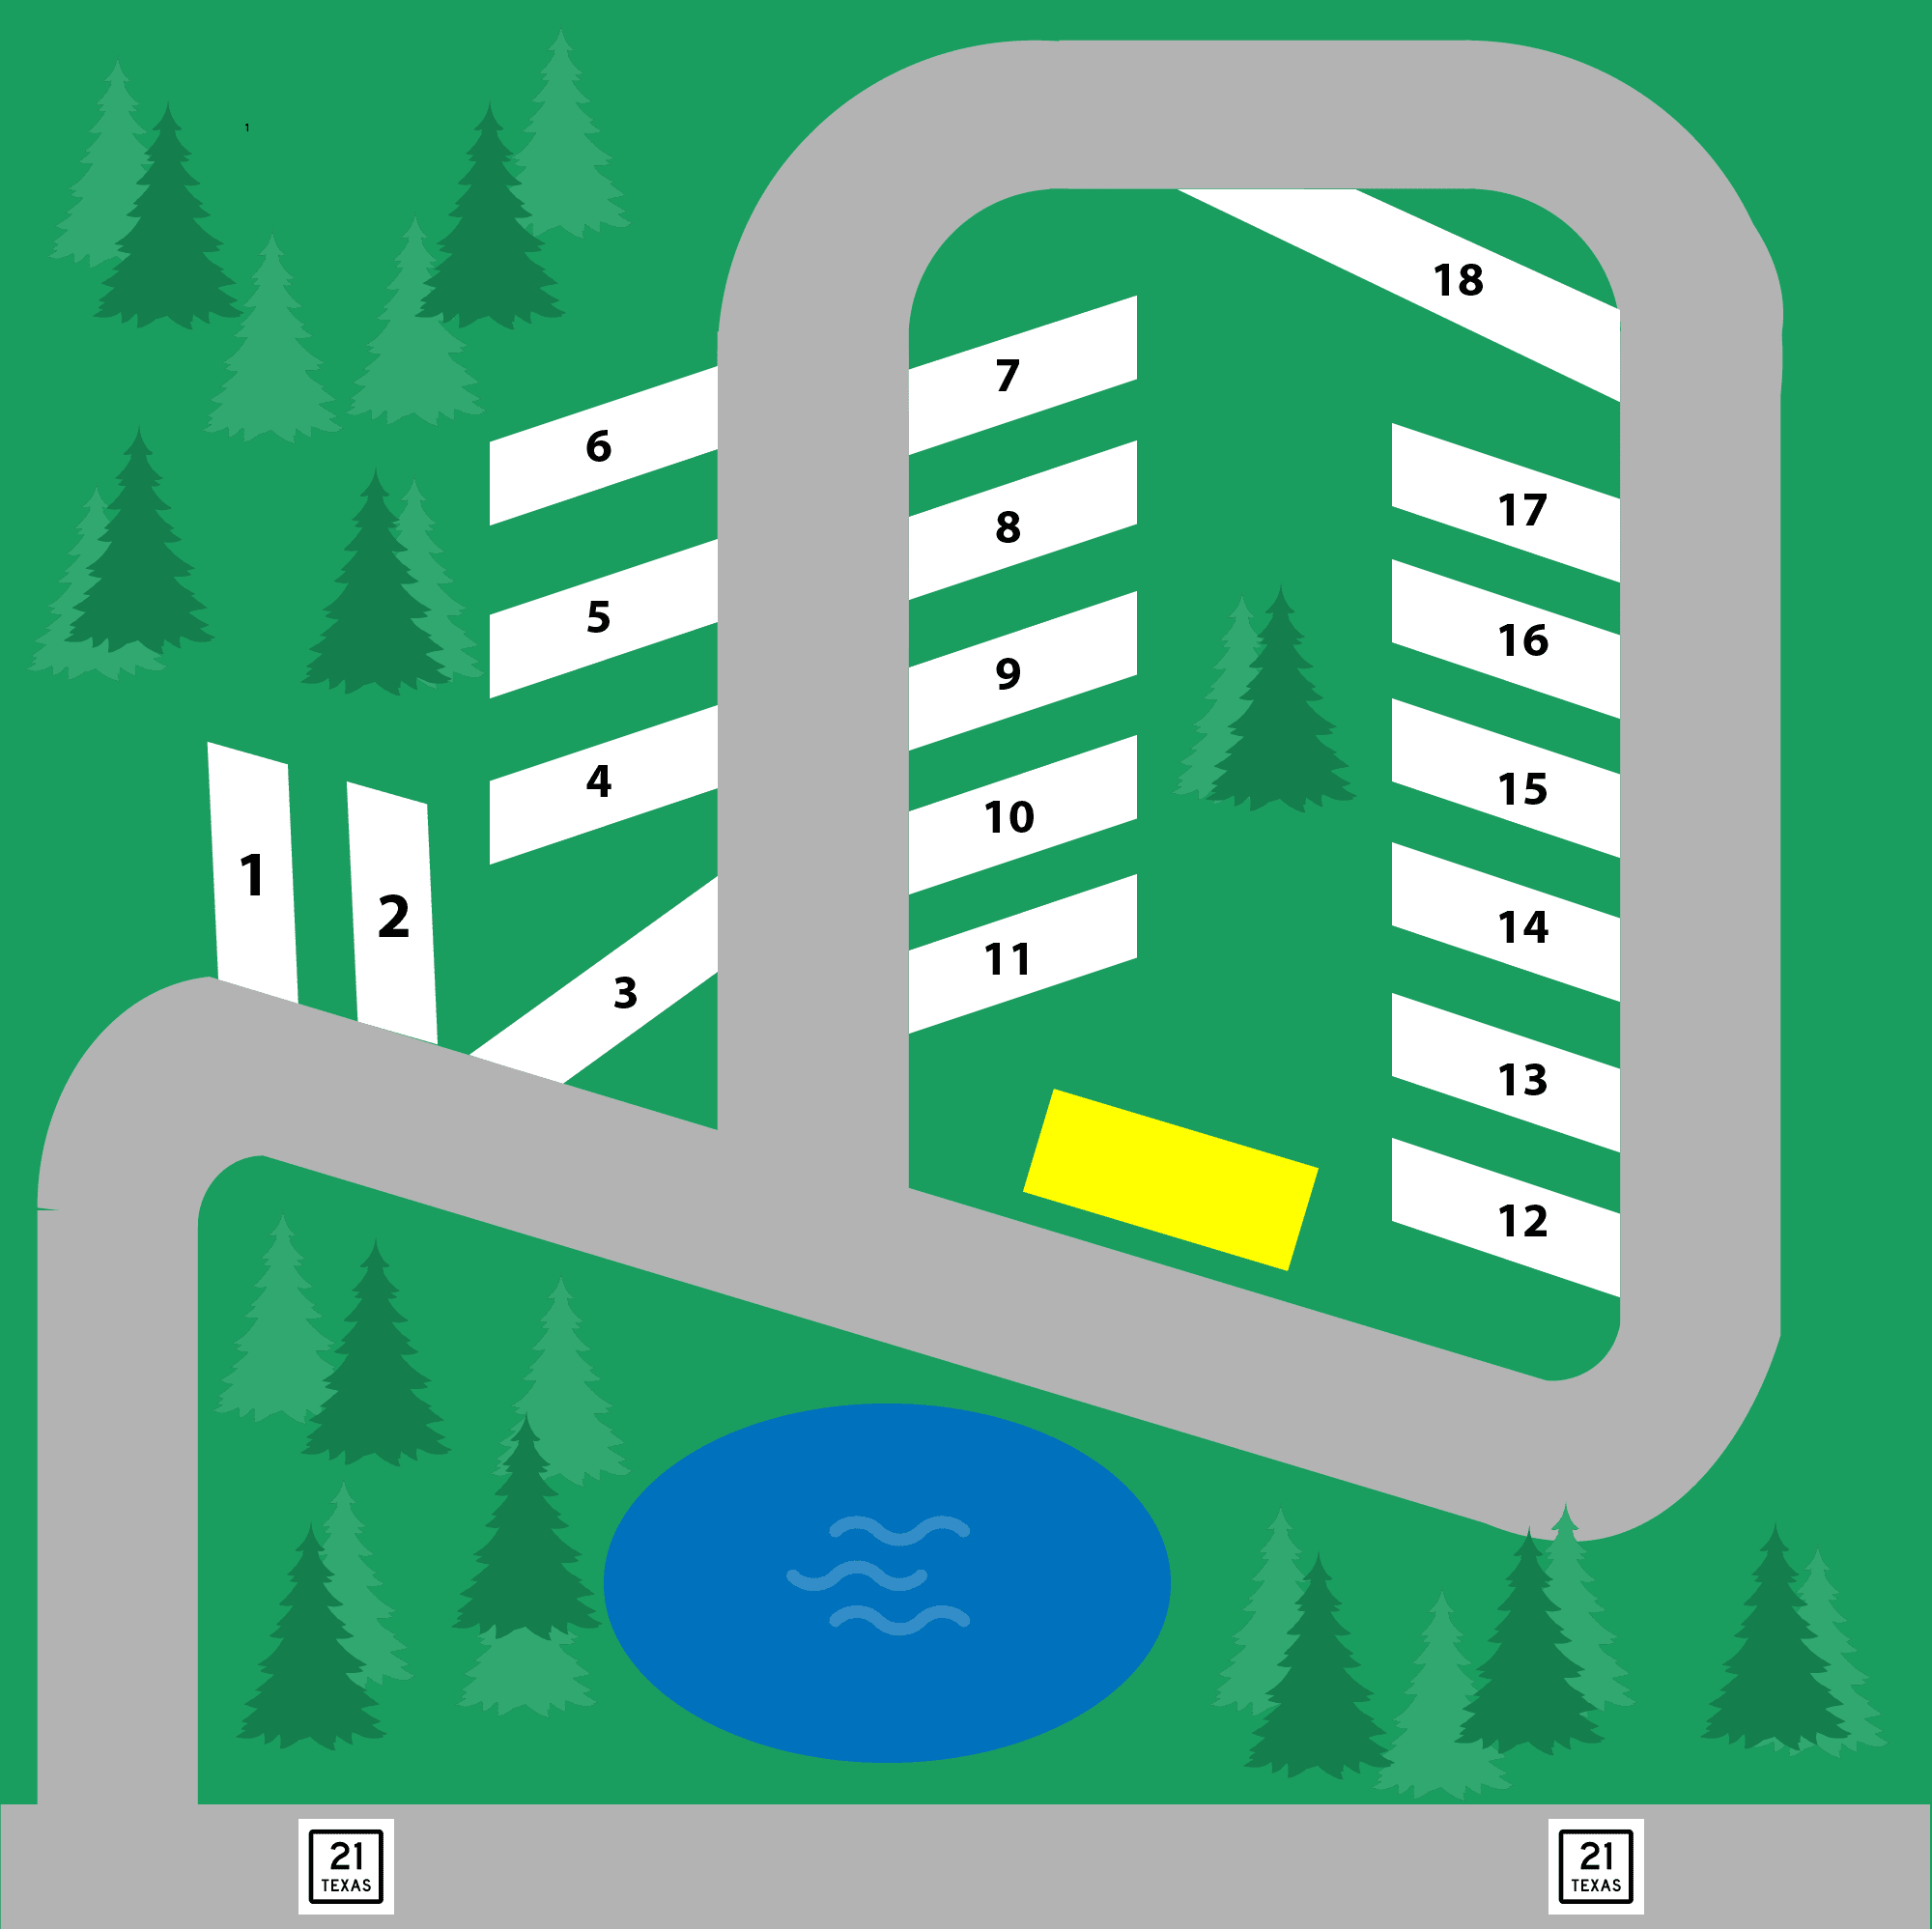 Bastrop Texas RV park site map and directions 2021